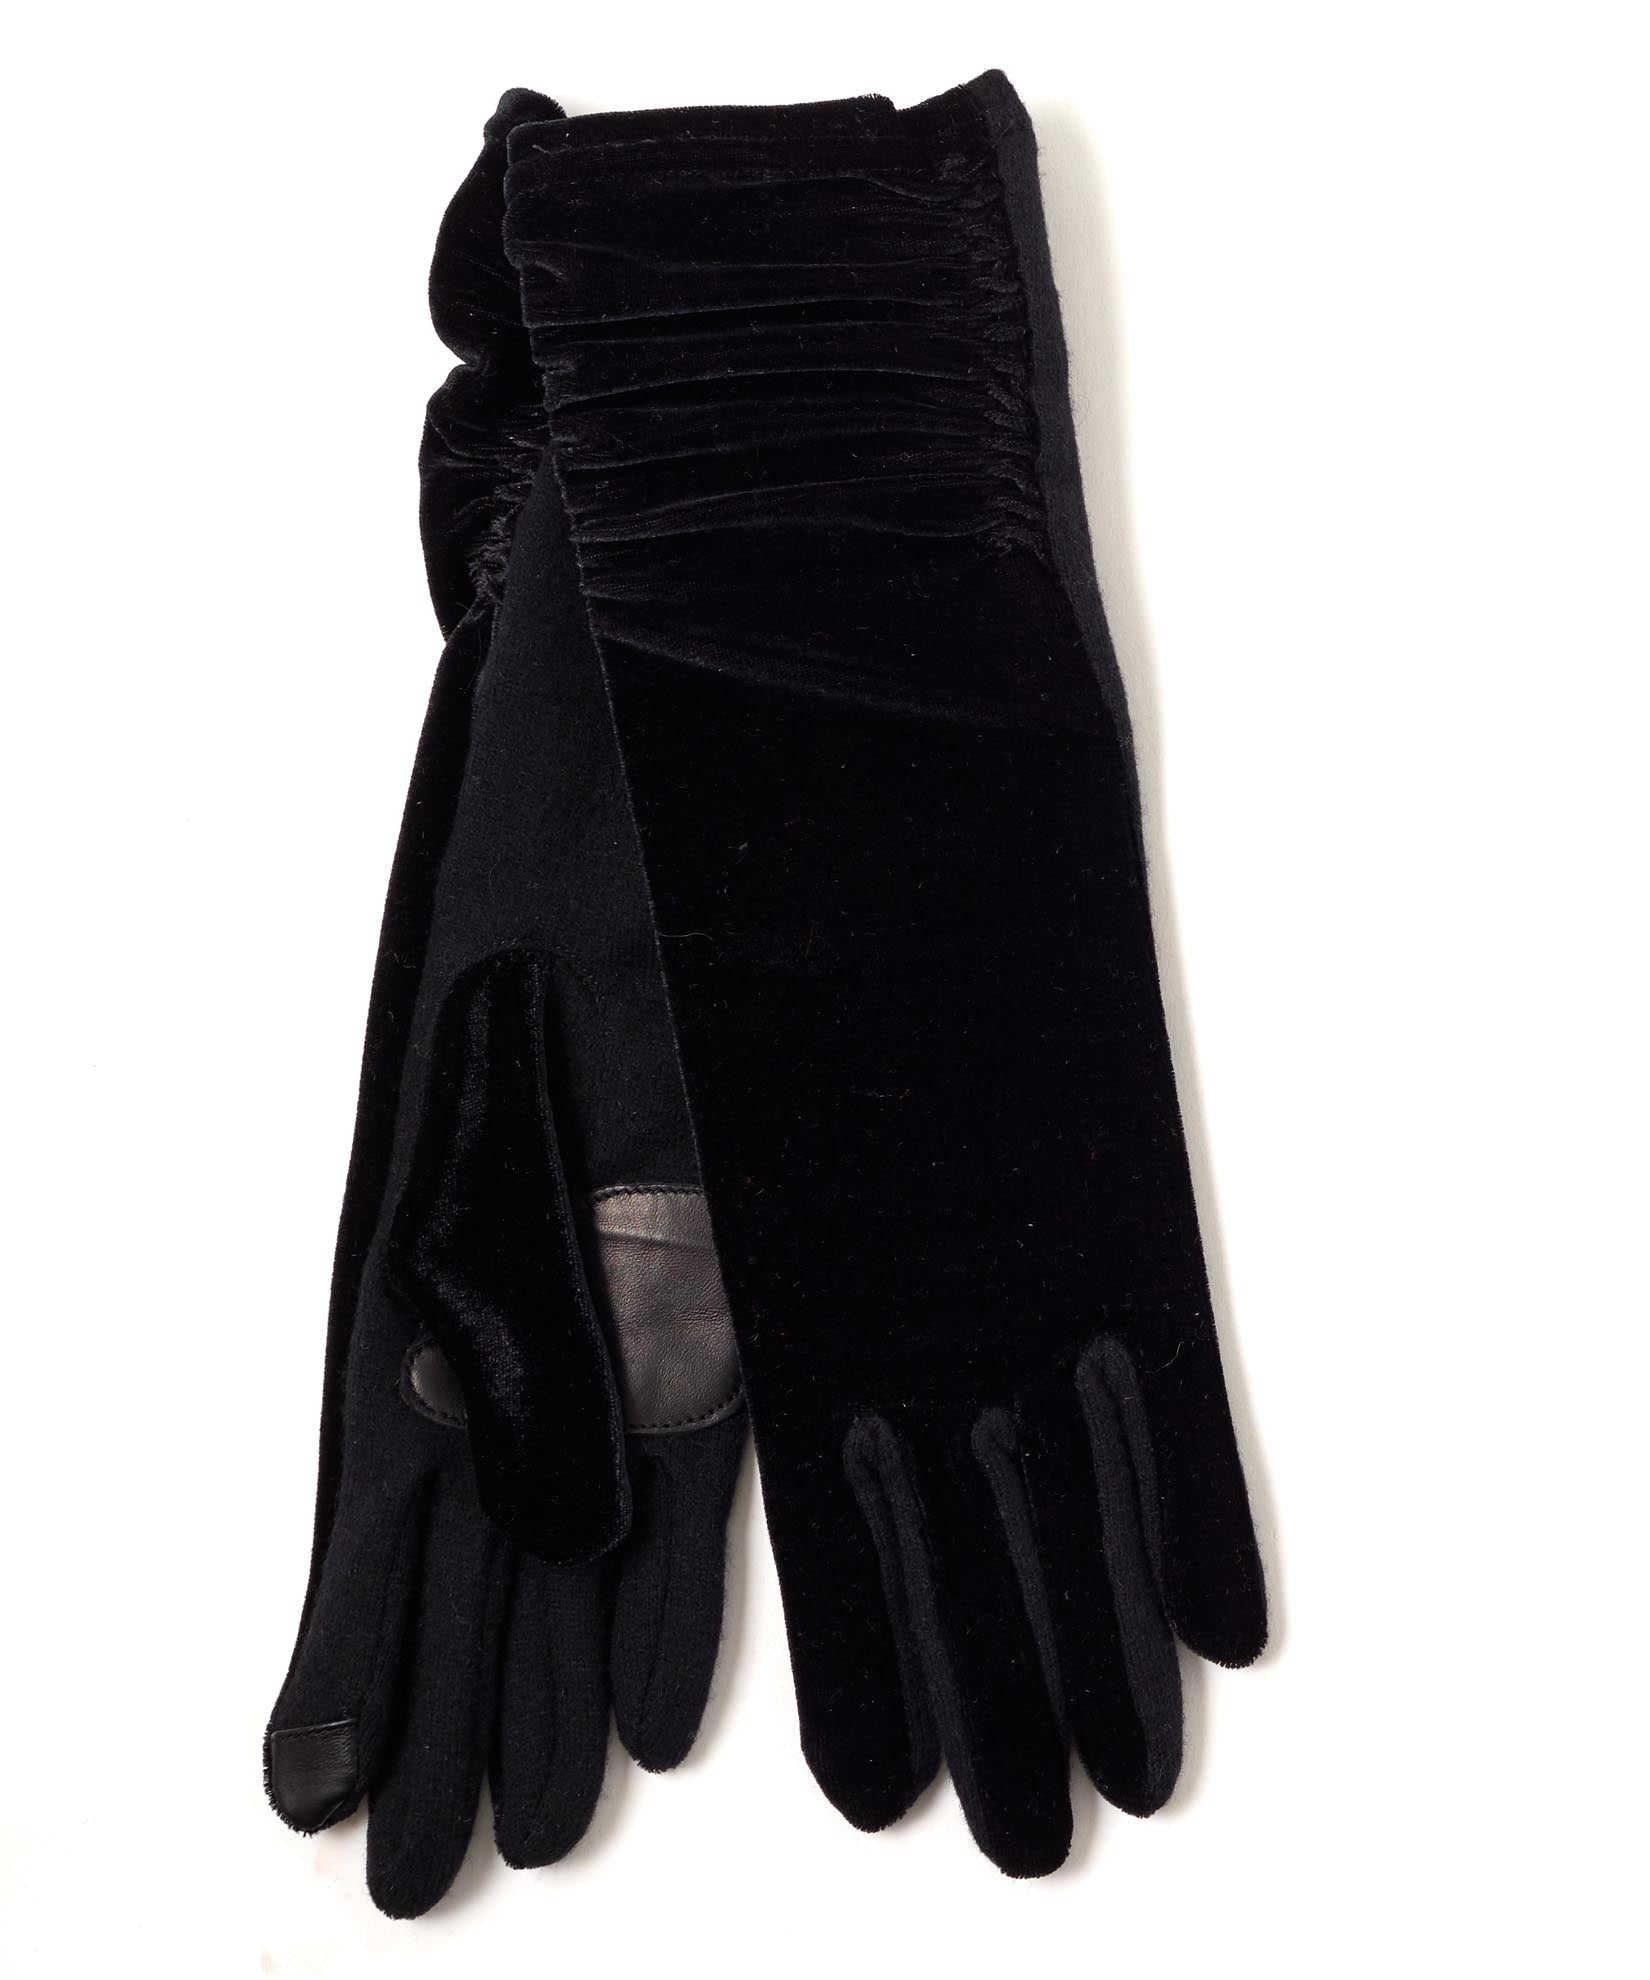 Black - Long Classic Velvet Glove